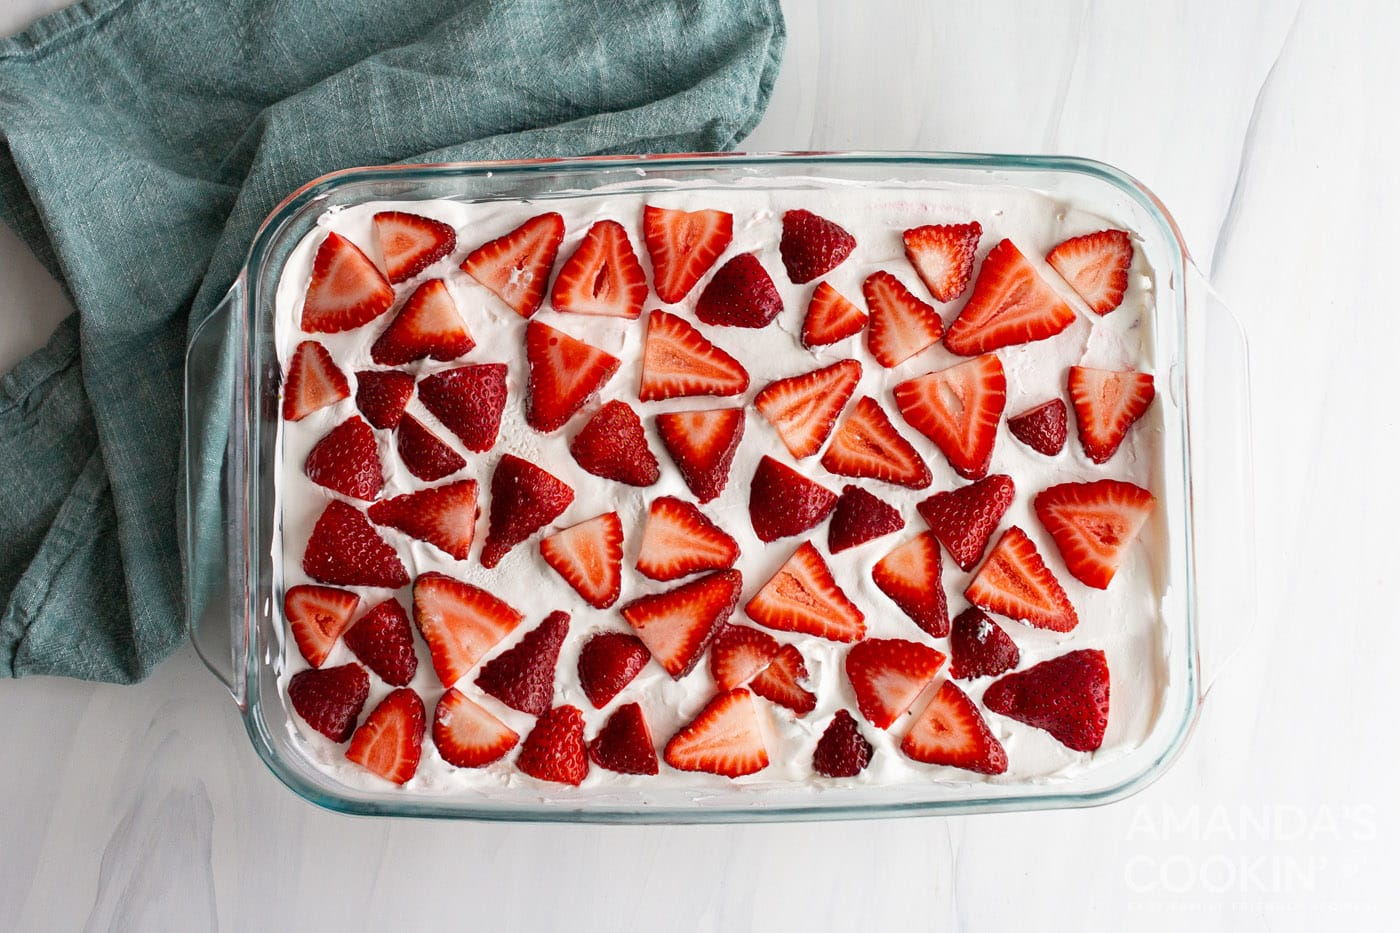 sliced strawberries on top of dessert in a baking dish